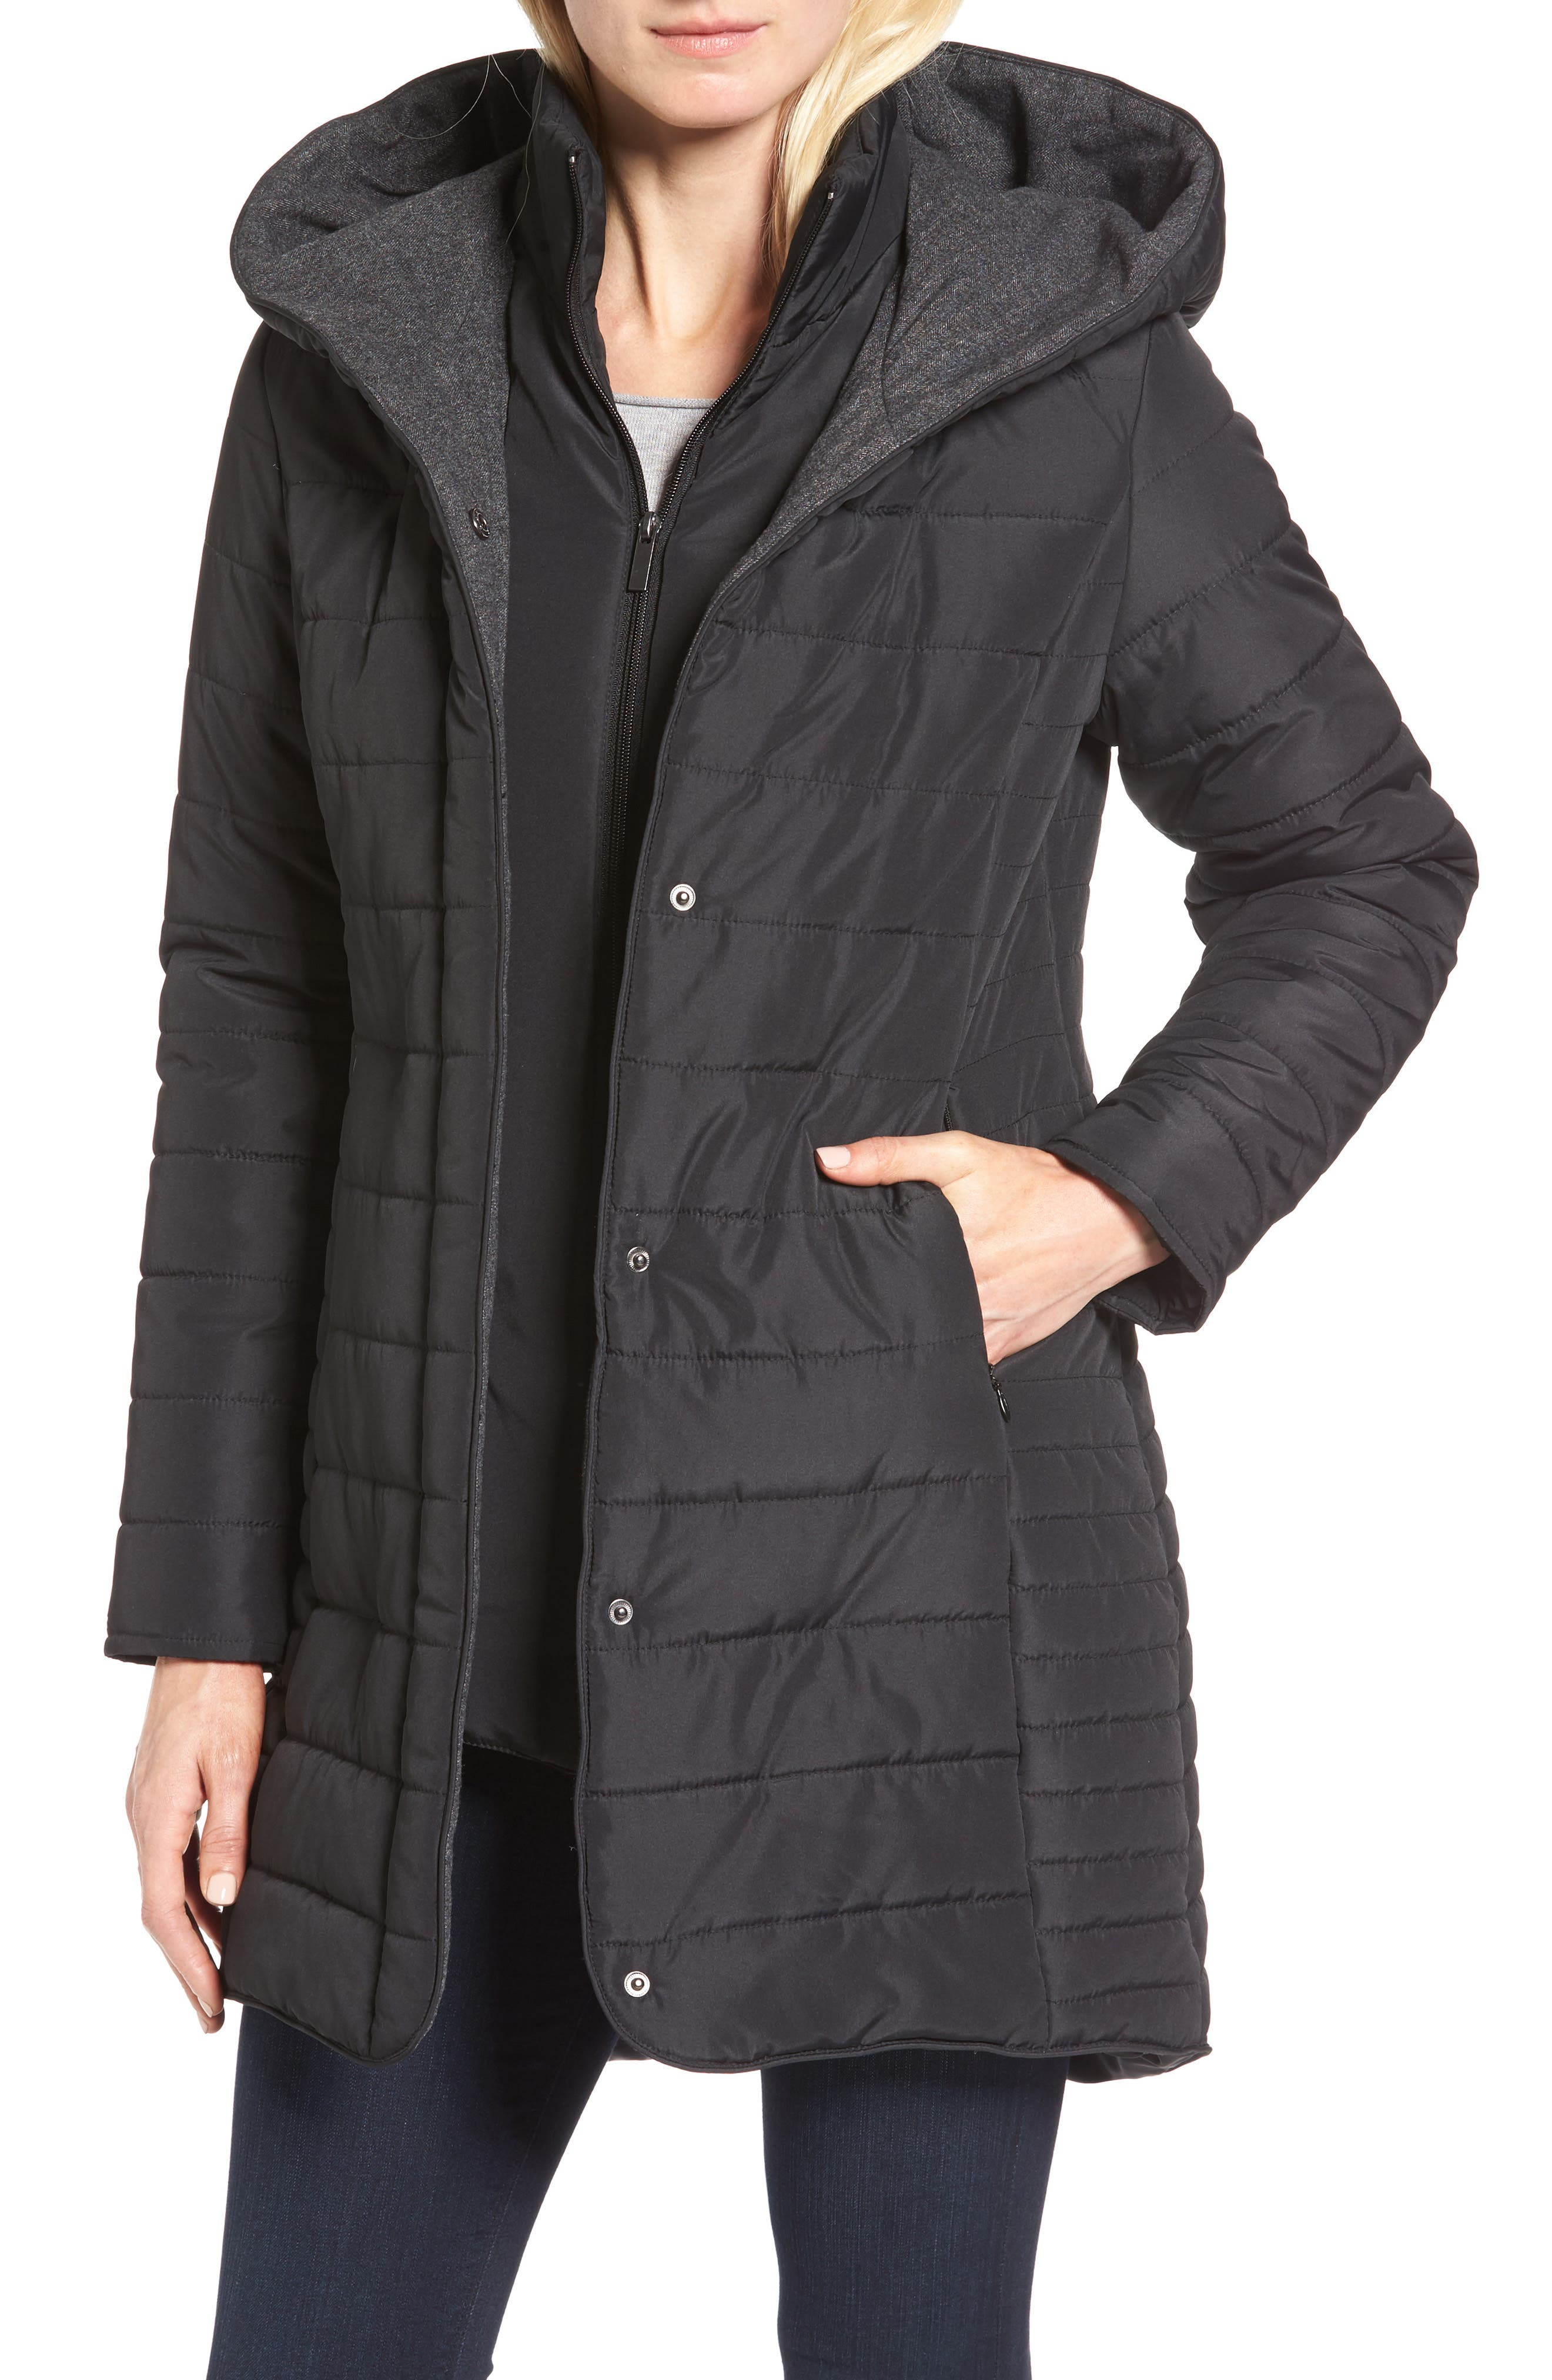 Maralyn & Me Quilted Hooded Jacket